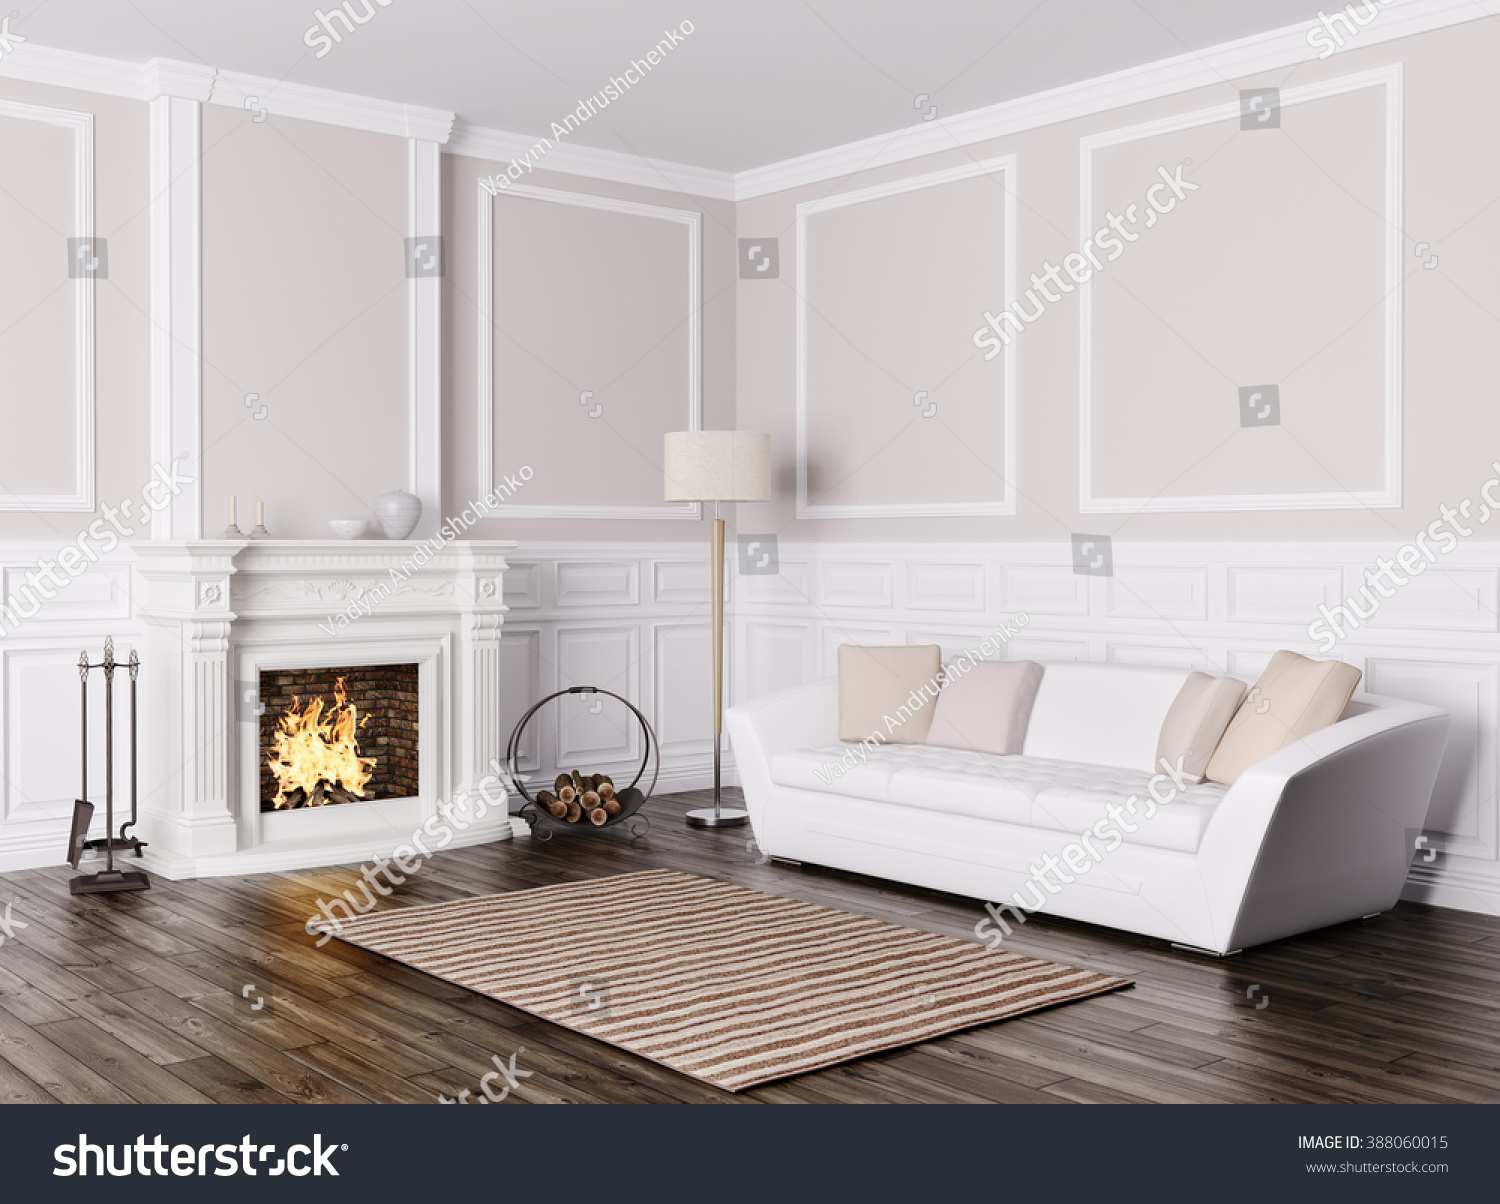 Classic Interior Design Of Living Room With White Sofa And Fireplace 3d  Render Part 85